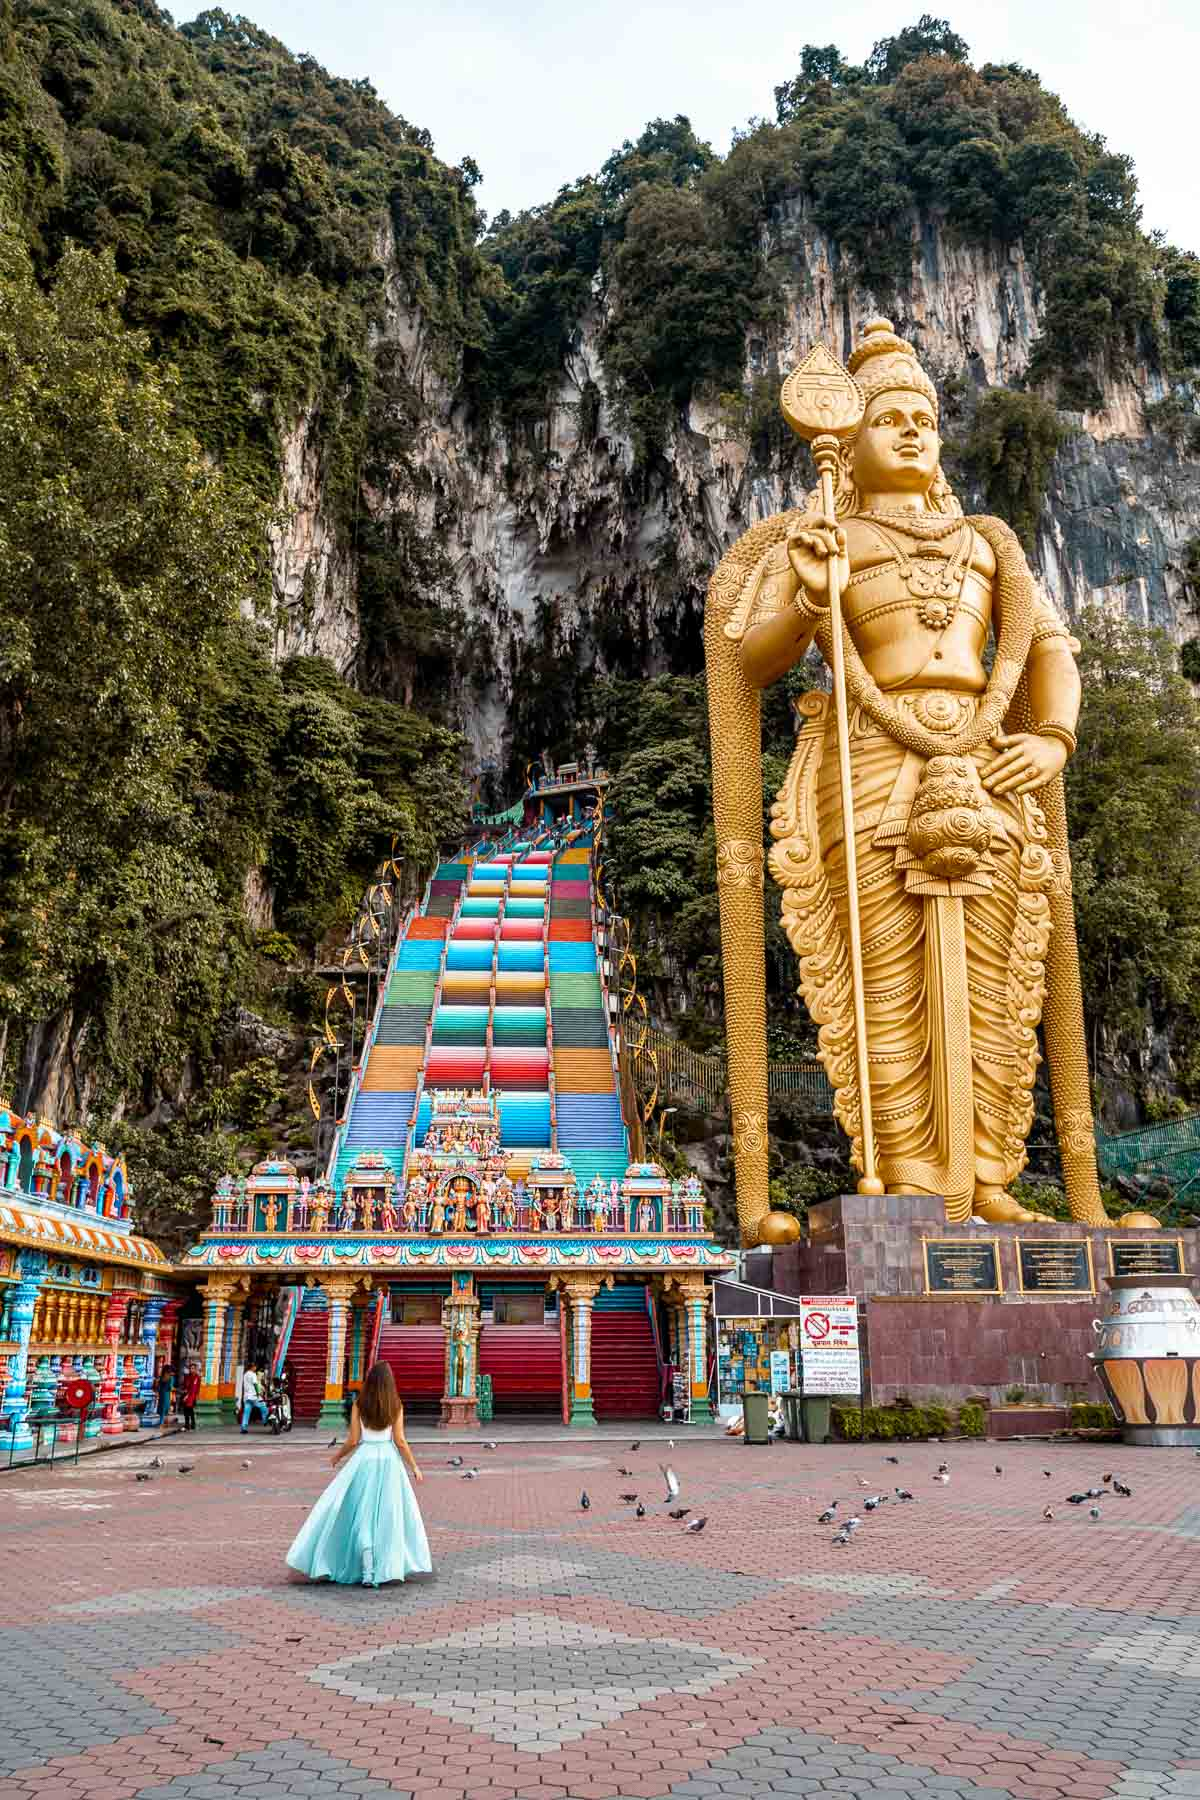 Girl in a blue dress standing in front of the colorful stairs at Batu Caves, Kuala Lumpur